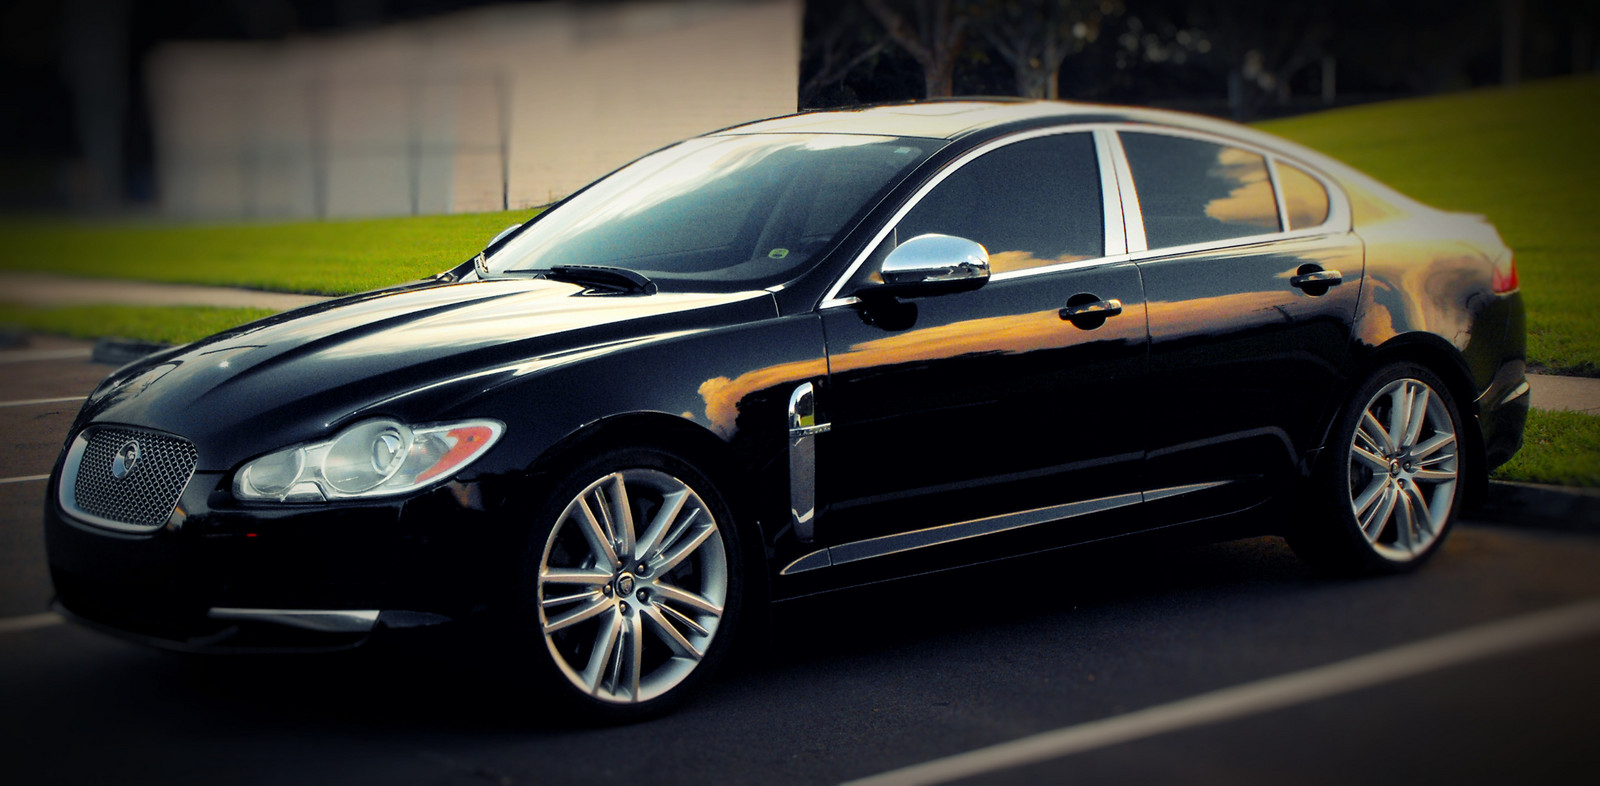 2011 Ultimate Black Jaguar XF Supercharged picture, mods, upgrades